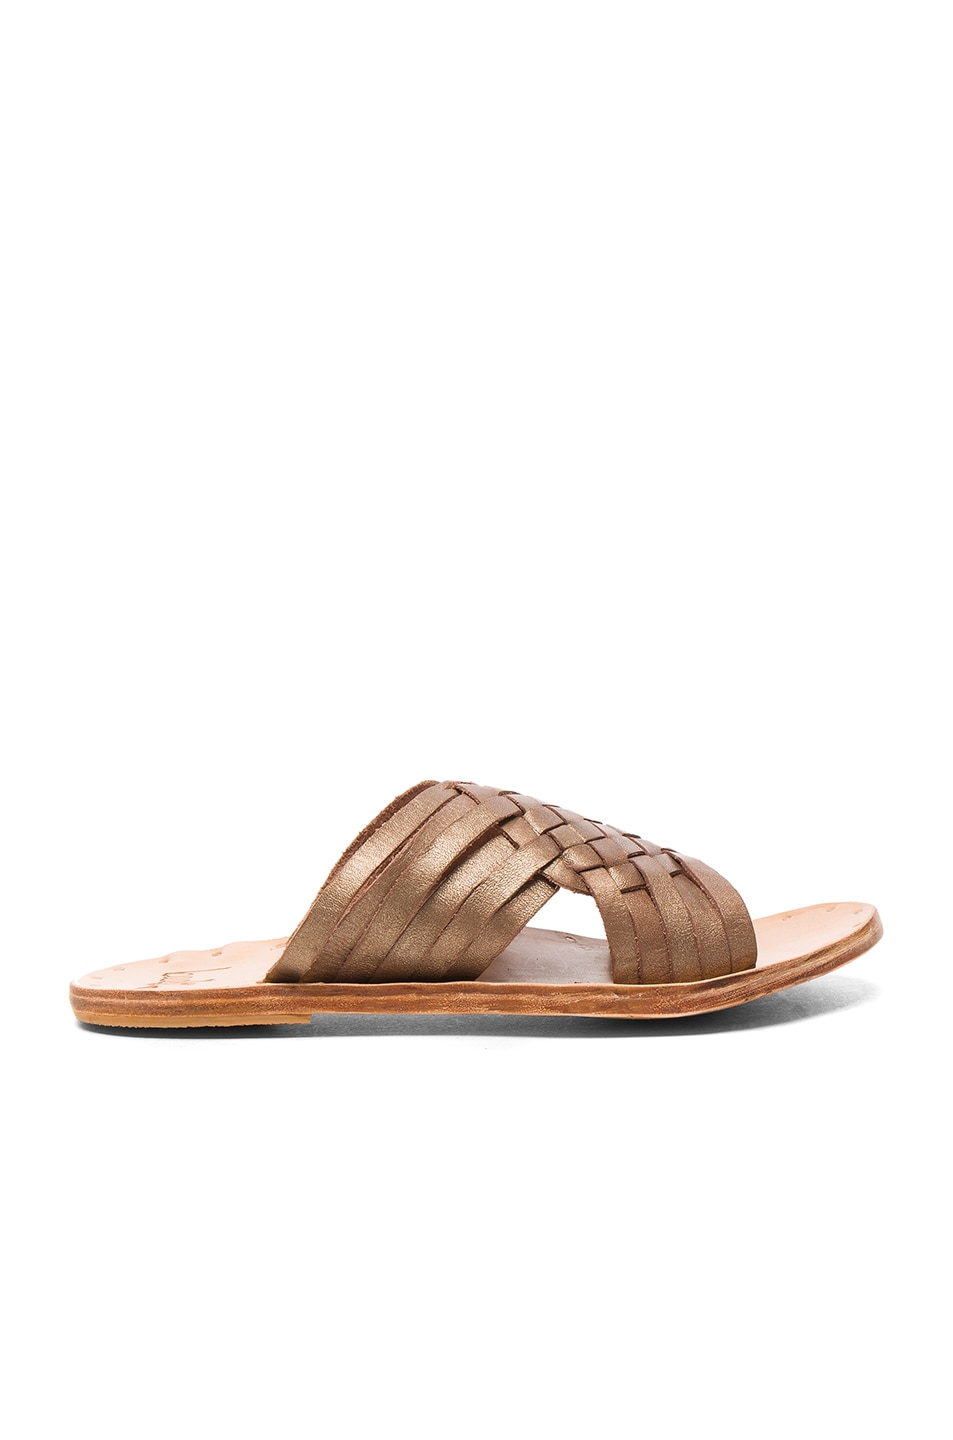 Image 1 of Beek Leather Swallow Sandals in Bronze & Natural